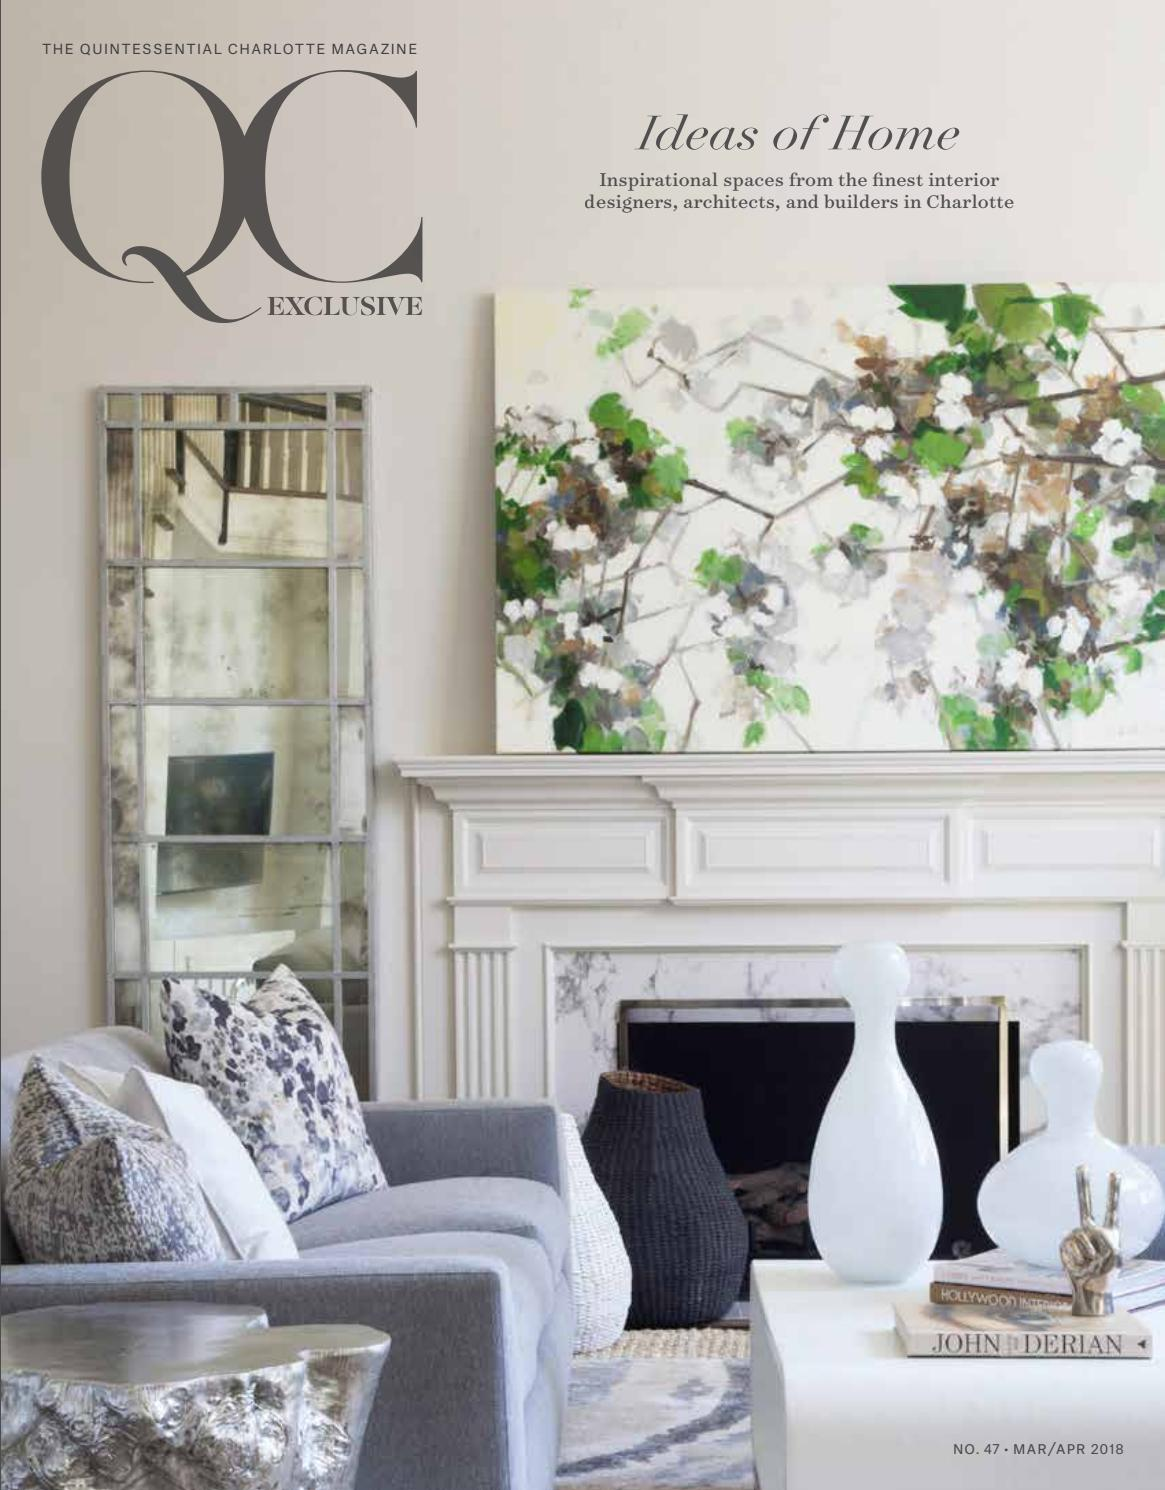 Qc Exclusive No 47 2018 Issue 2 Ideas Of Home By Qc Exclusive Magazine Issuu